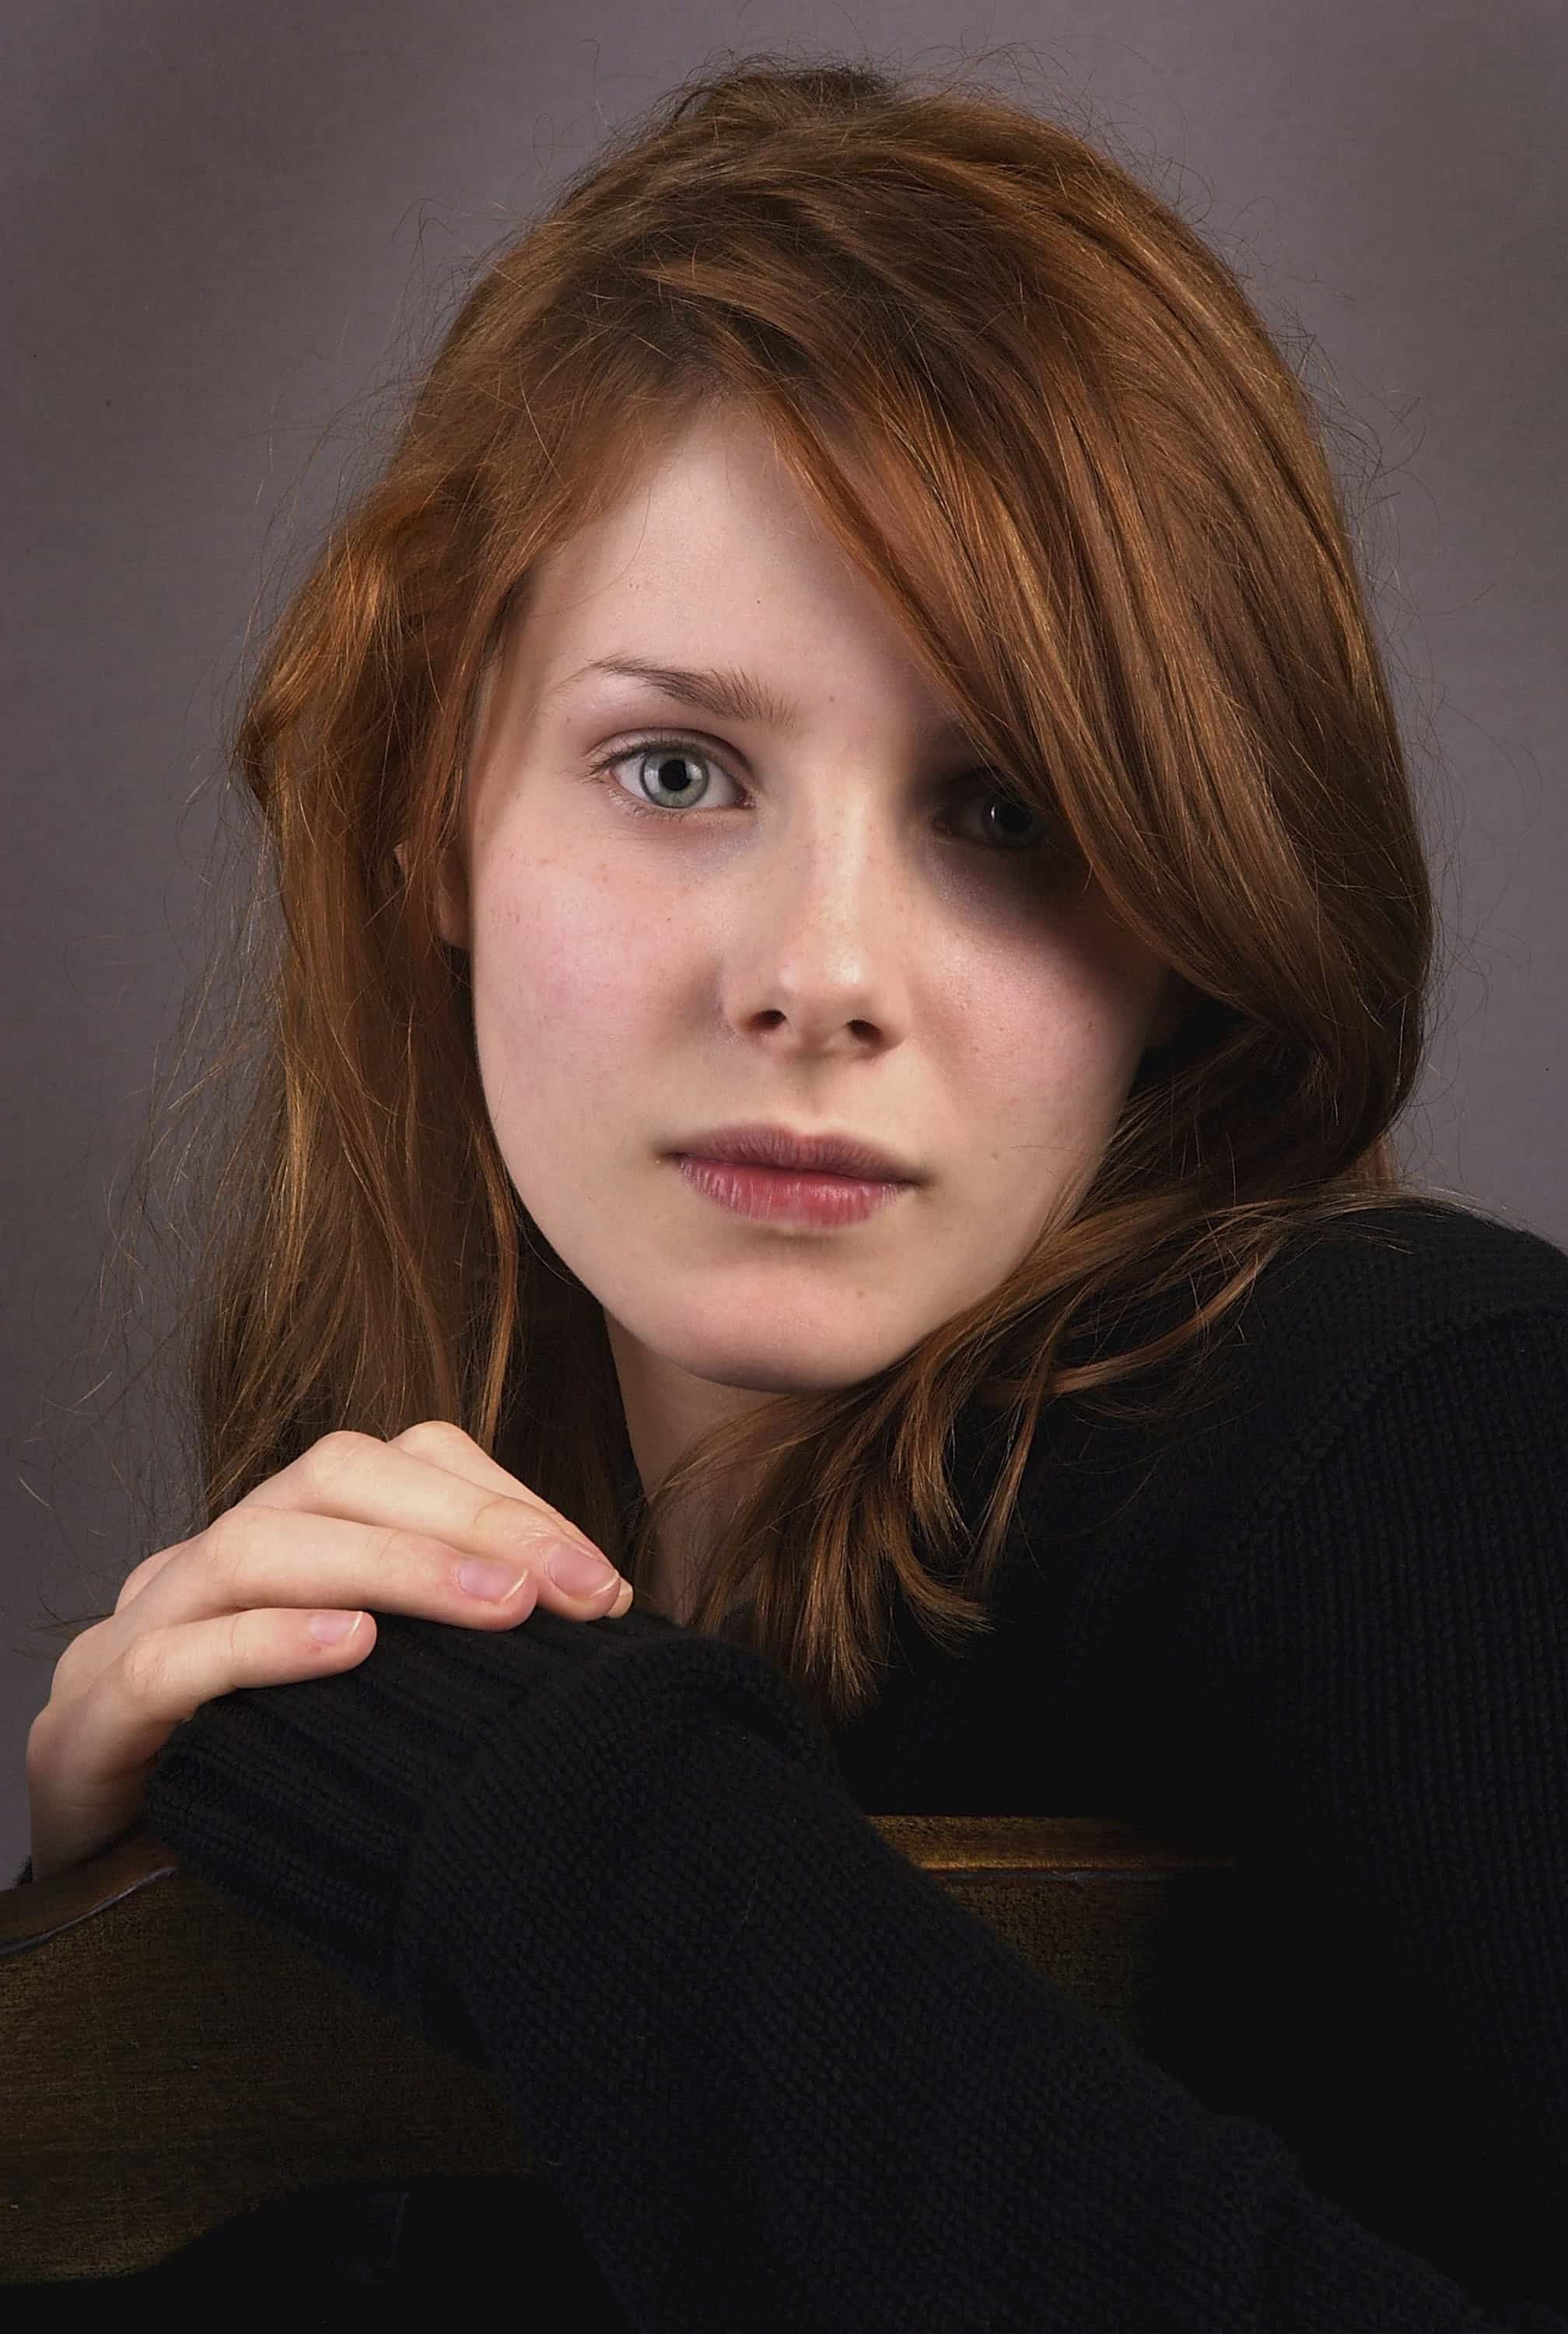 photo Rachel Hurd-Wood (born 1990)